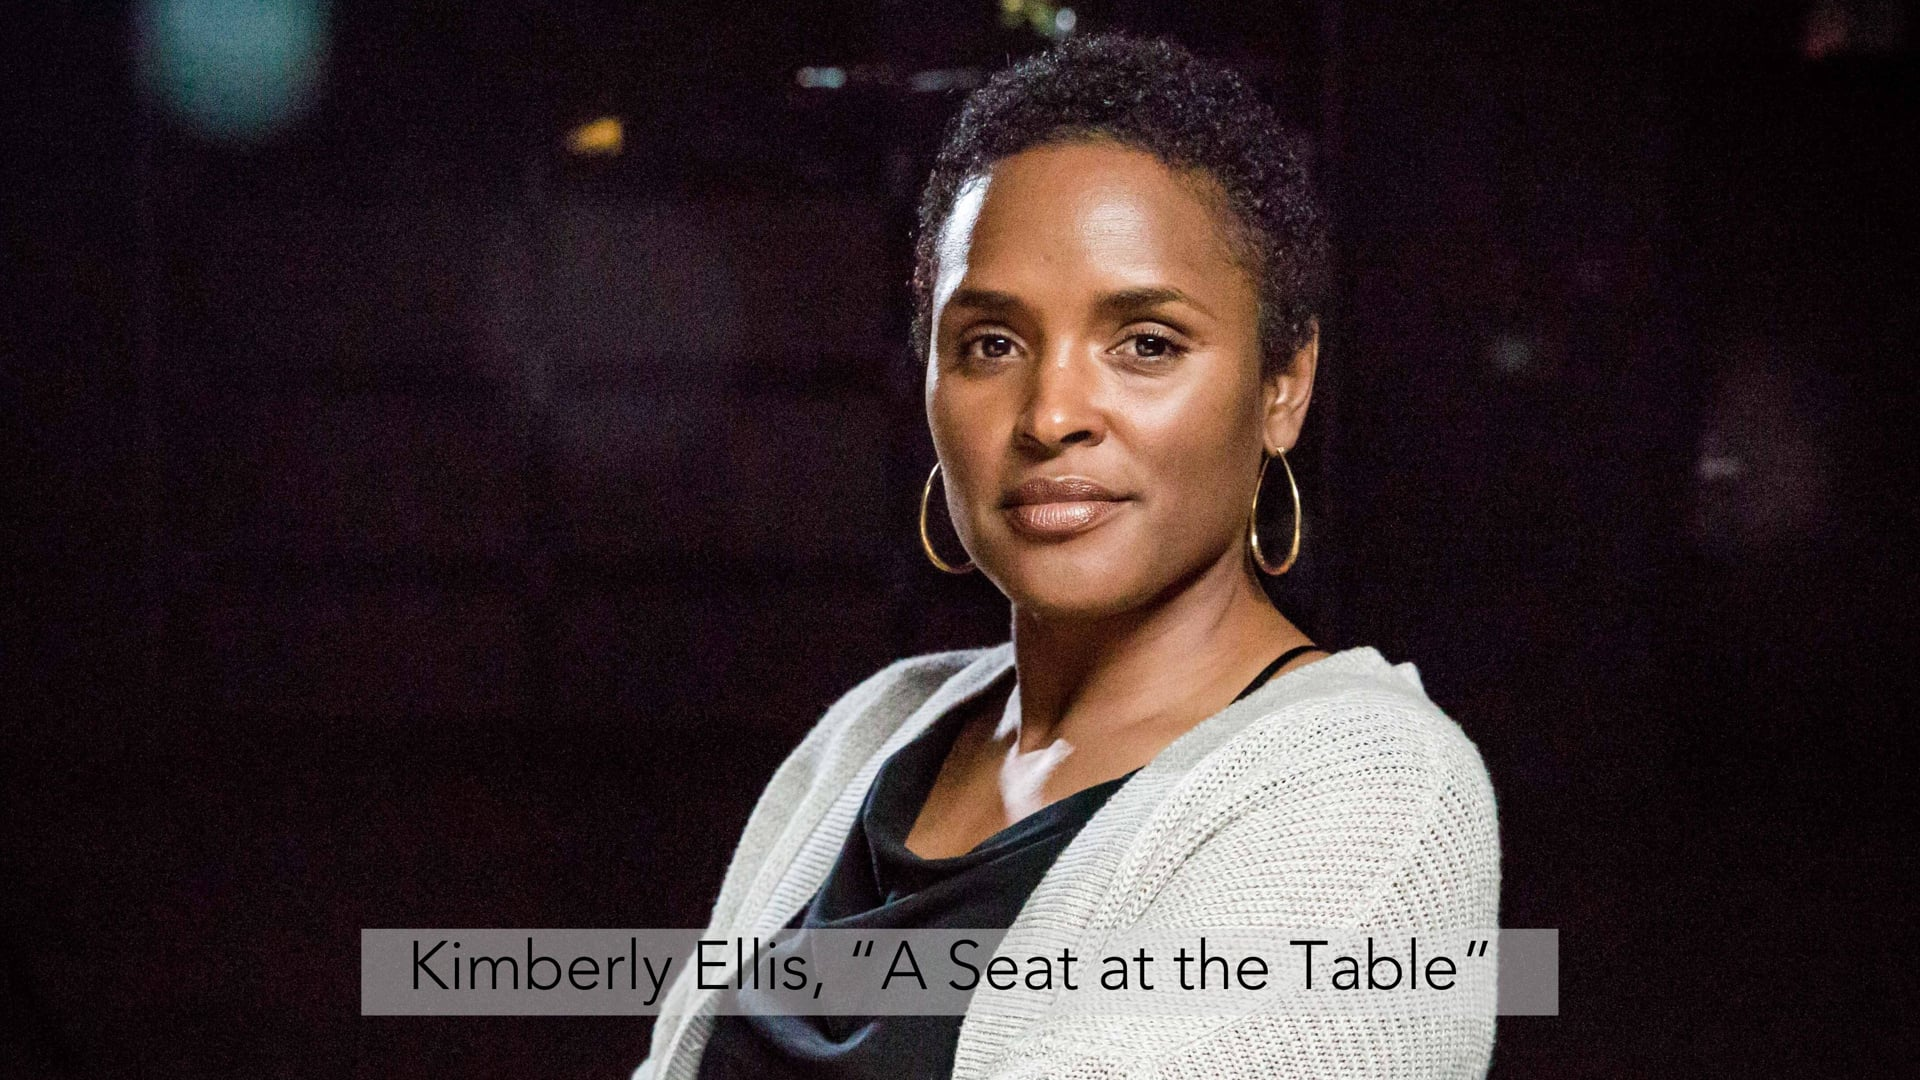 """Kimberly Ellis, """"A Seat at the Table"""""""